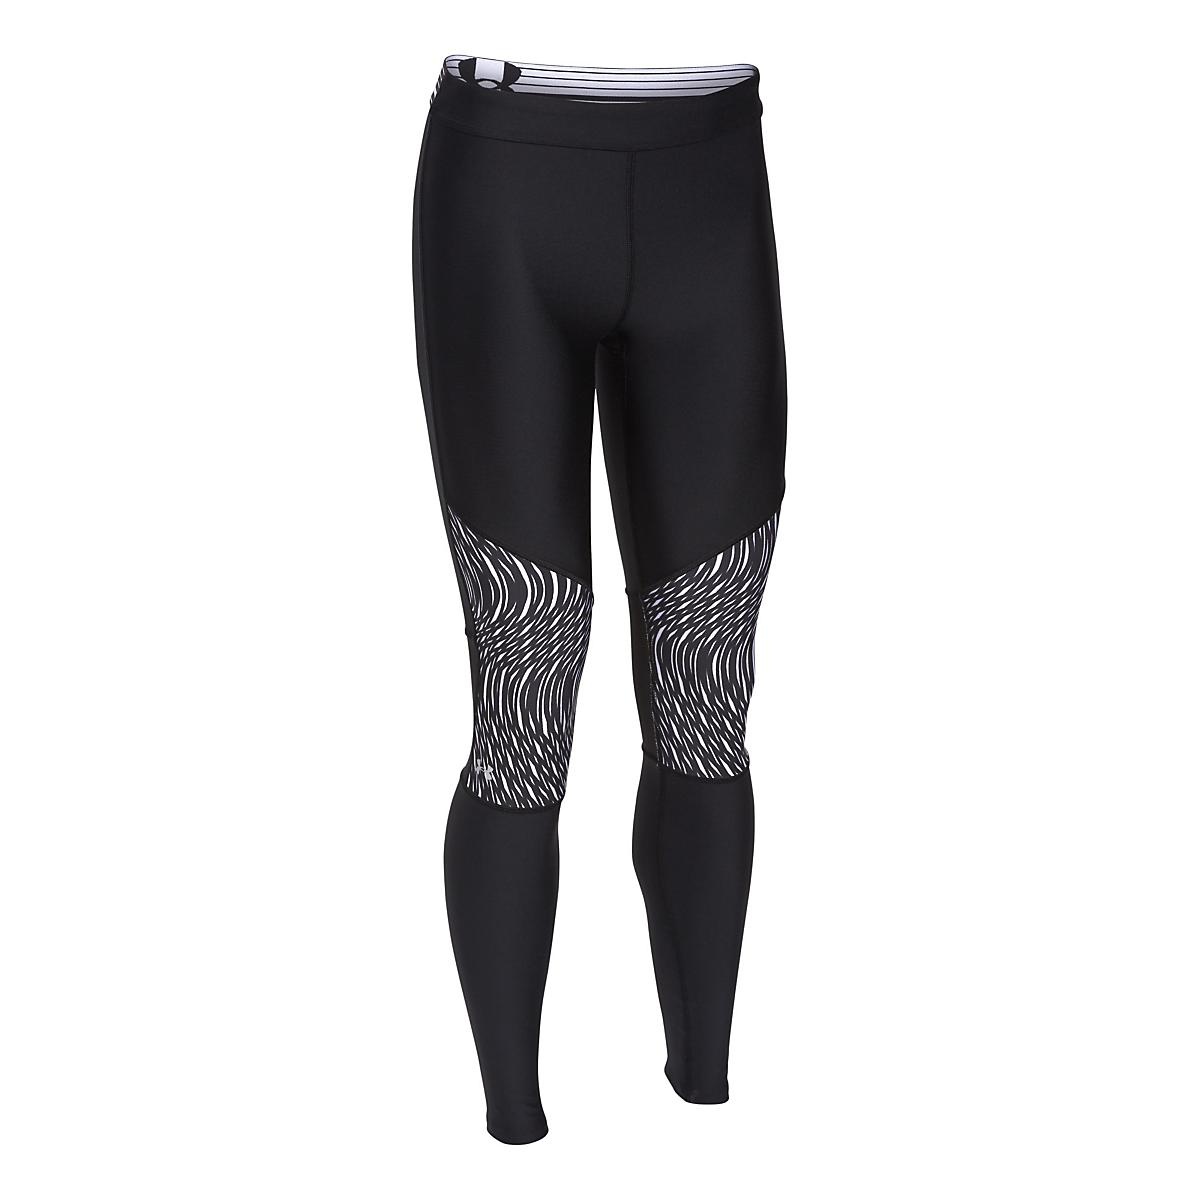 Women's Under Armour�HeatGear Armour Print Inset Legging